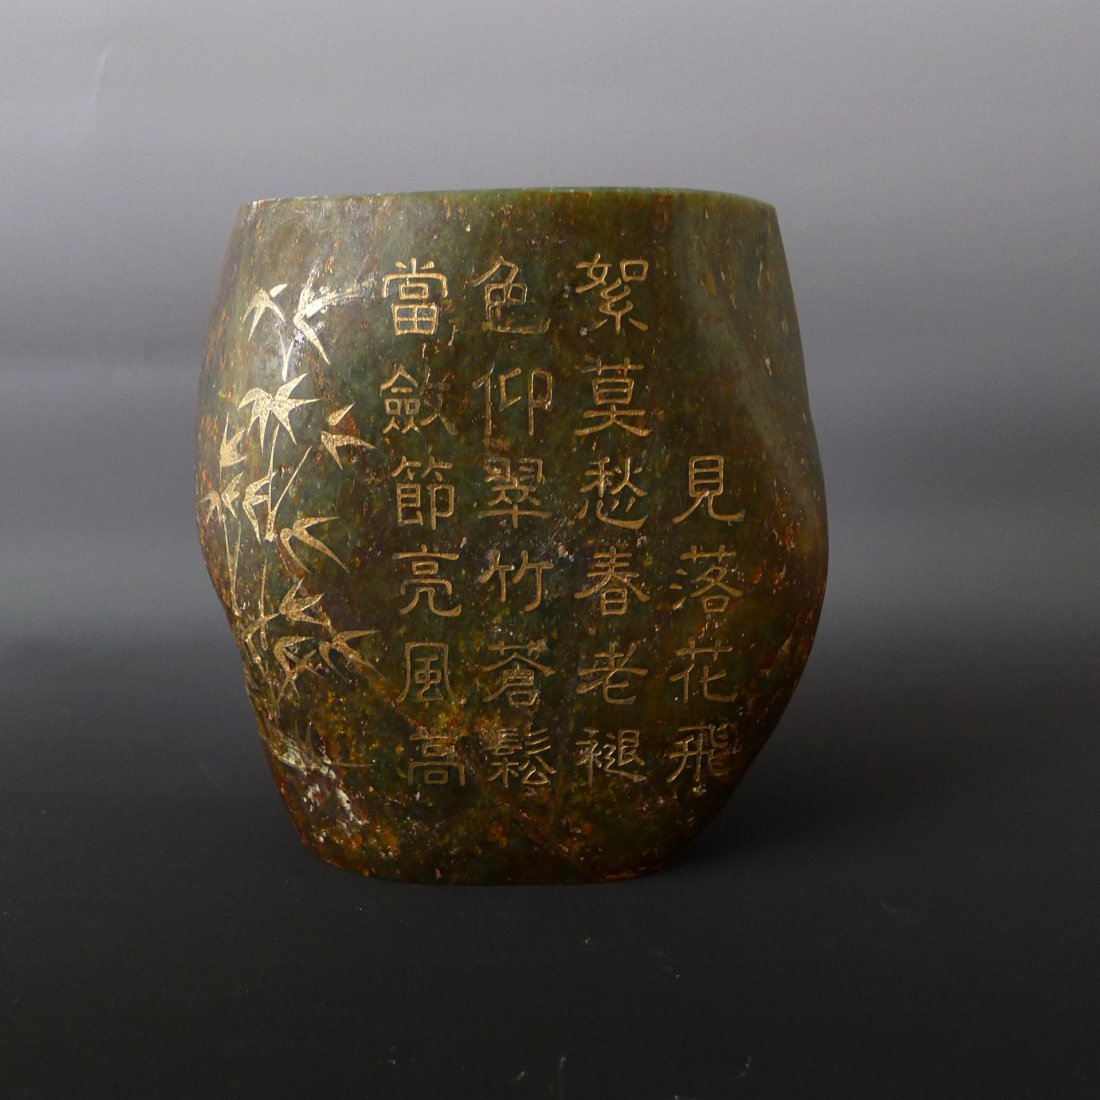 CHINESE NEPHRITE SEED MATERIAL PEN HOLDER